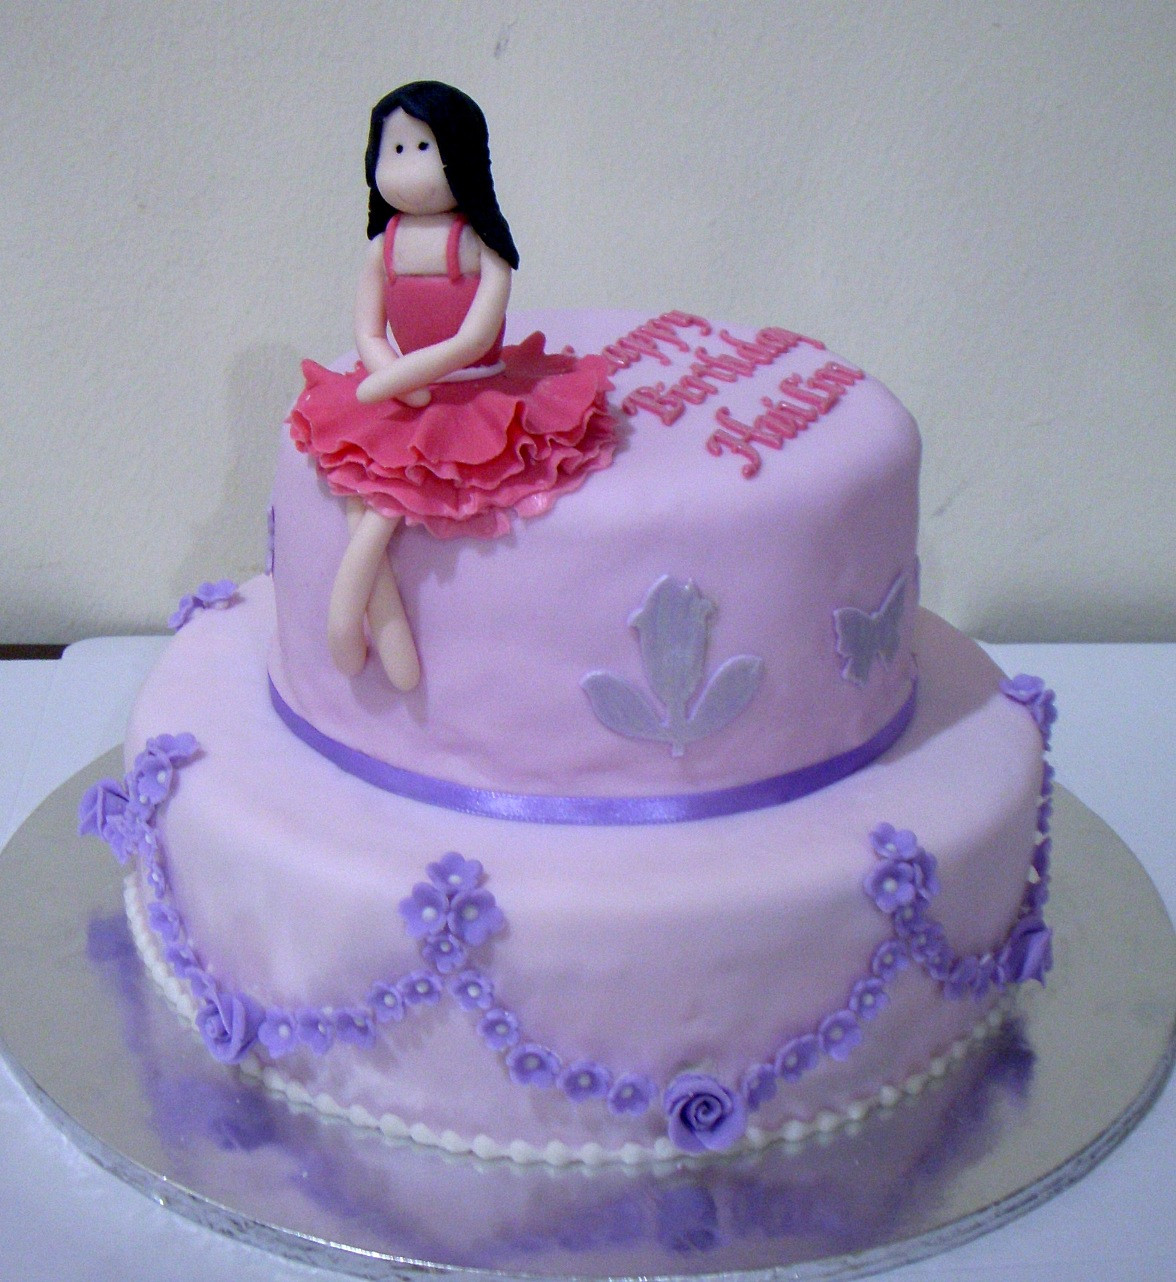 Best ideas about Girls Birthday Cake . Save or Pin Bearylicious Cakes Purple birthday cake with girl Now.